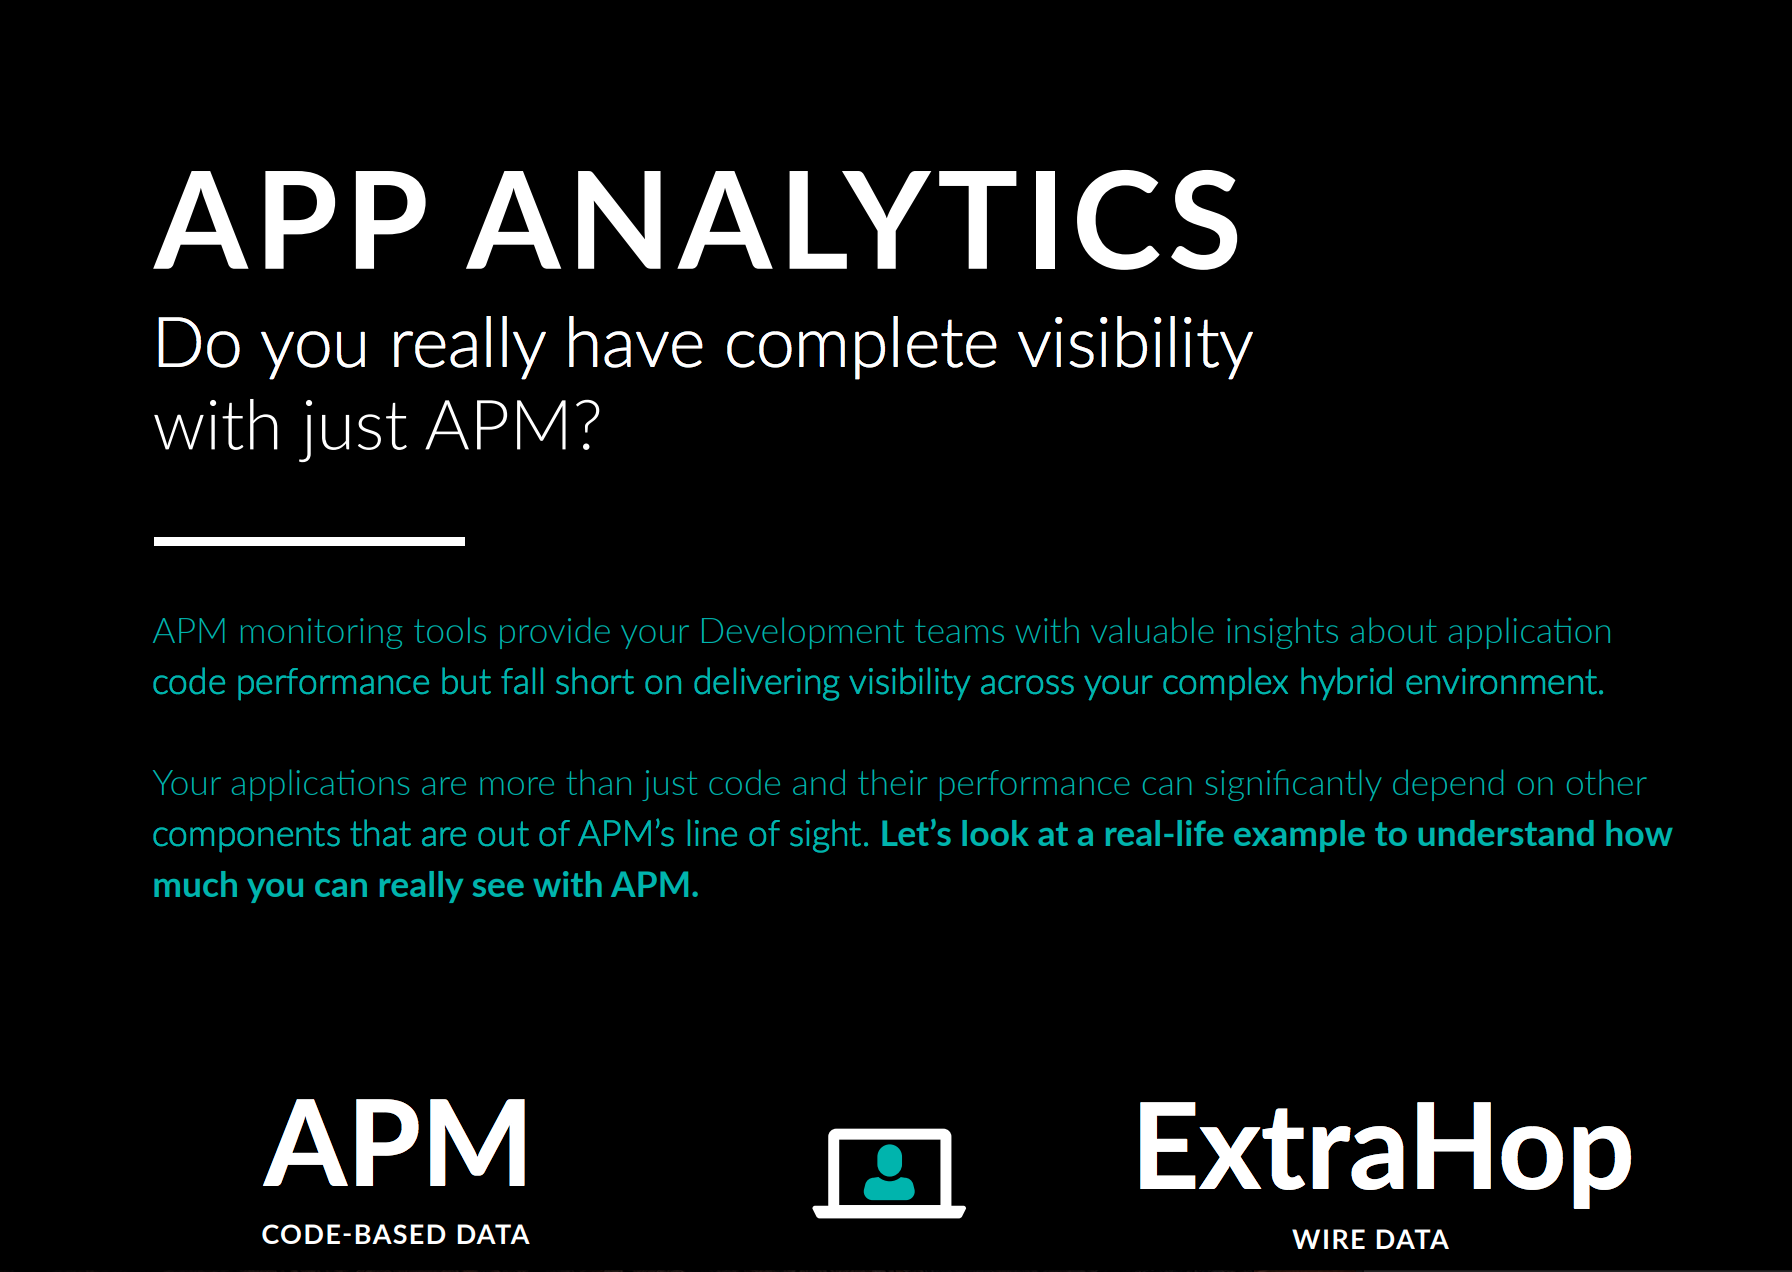 Application Analytics with ExtraHop